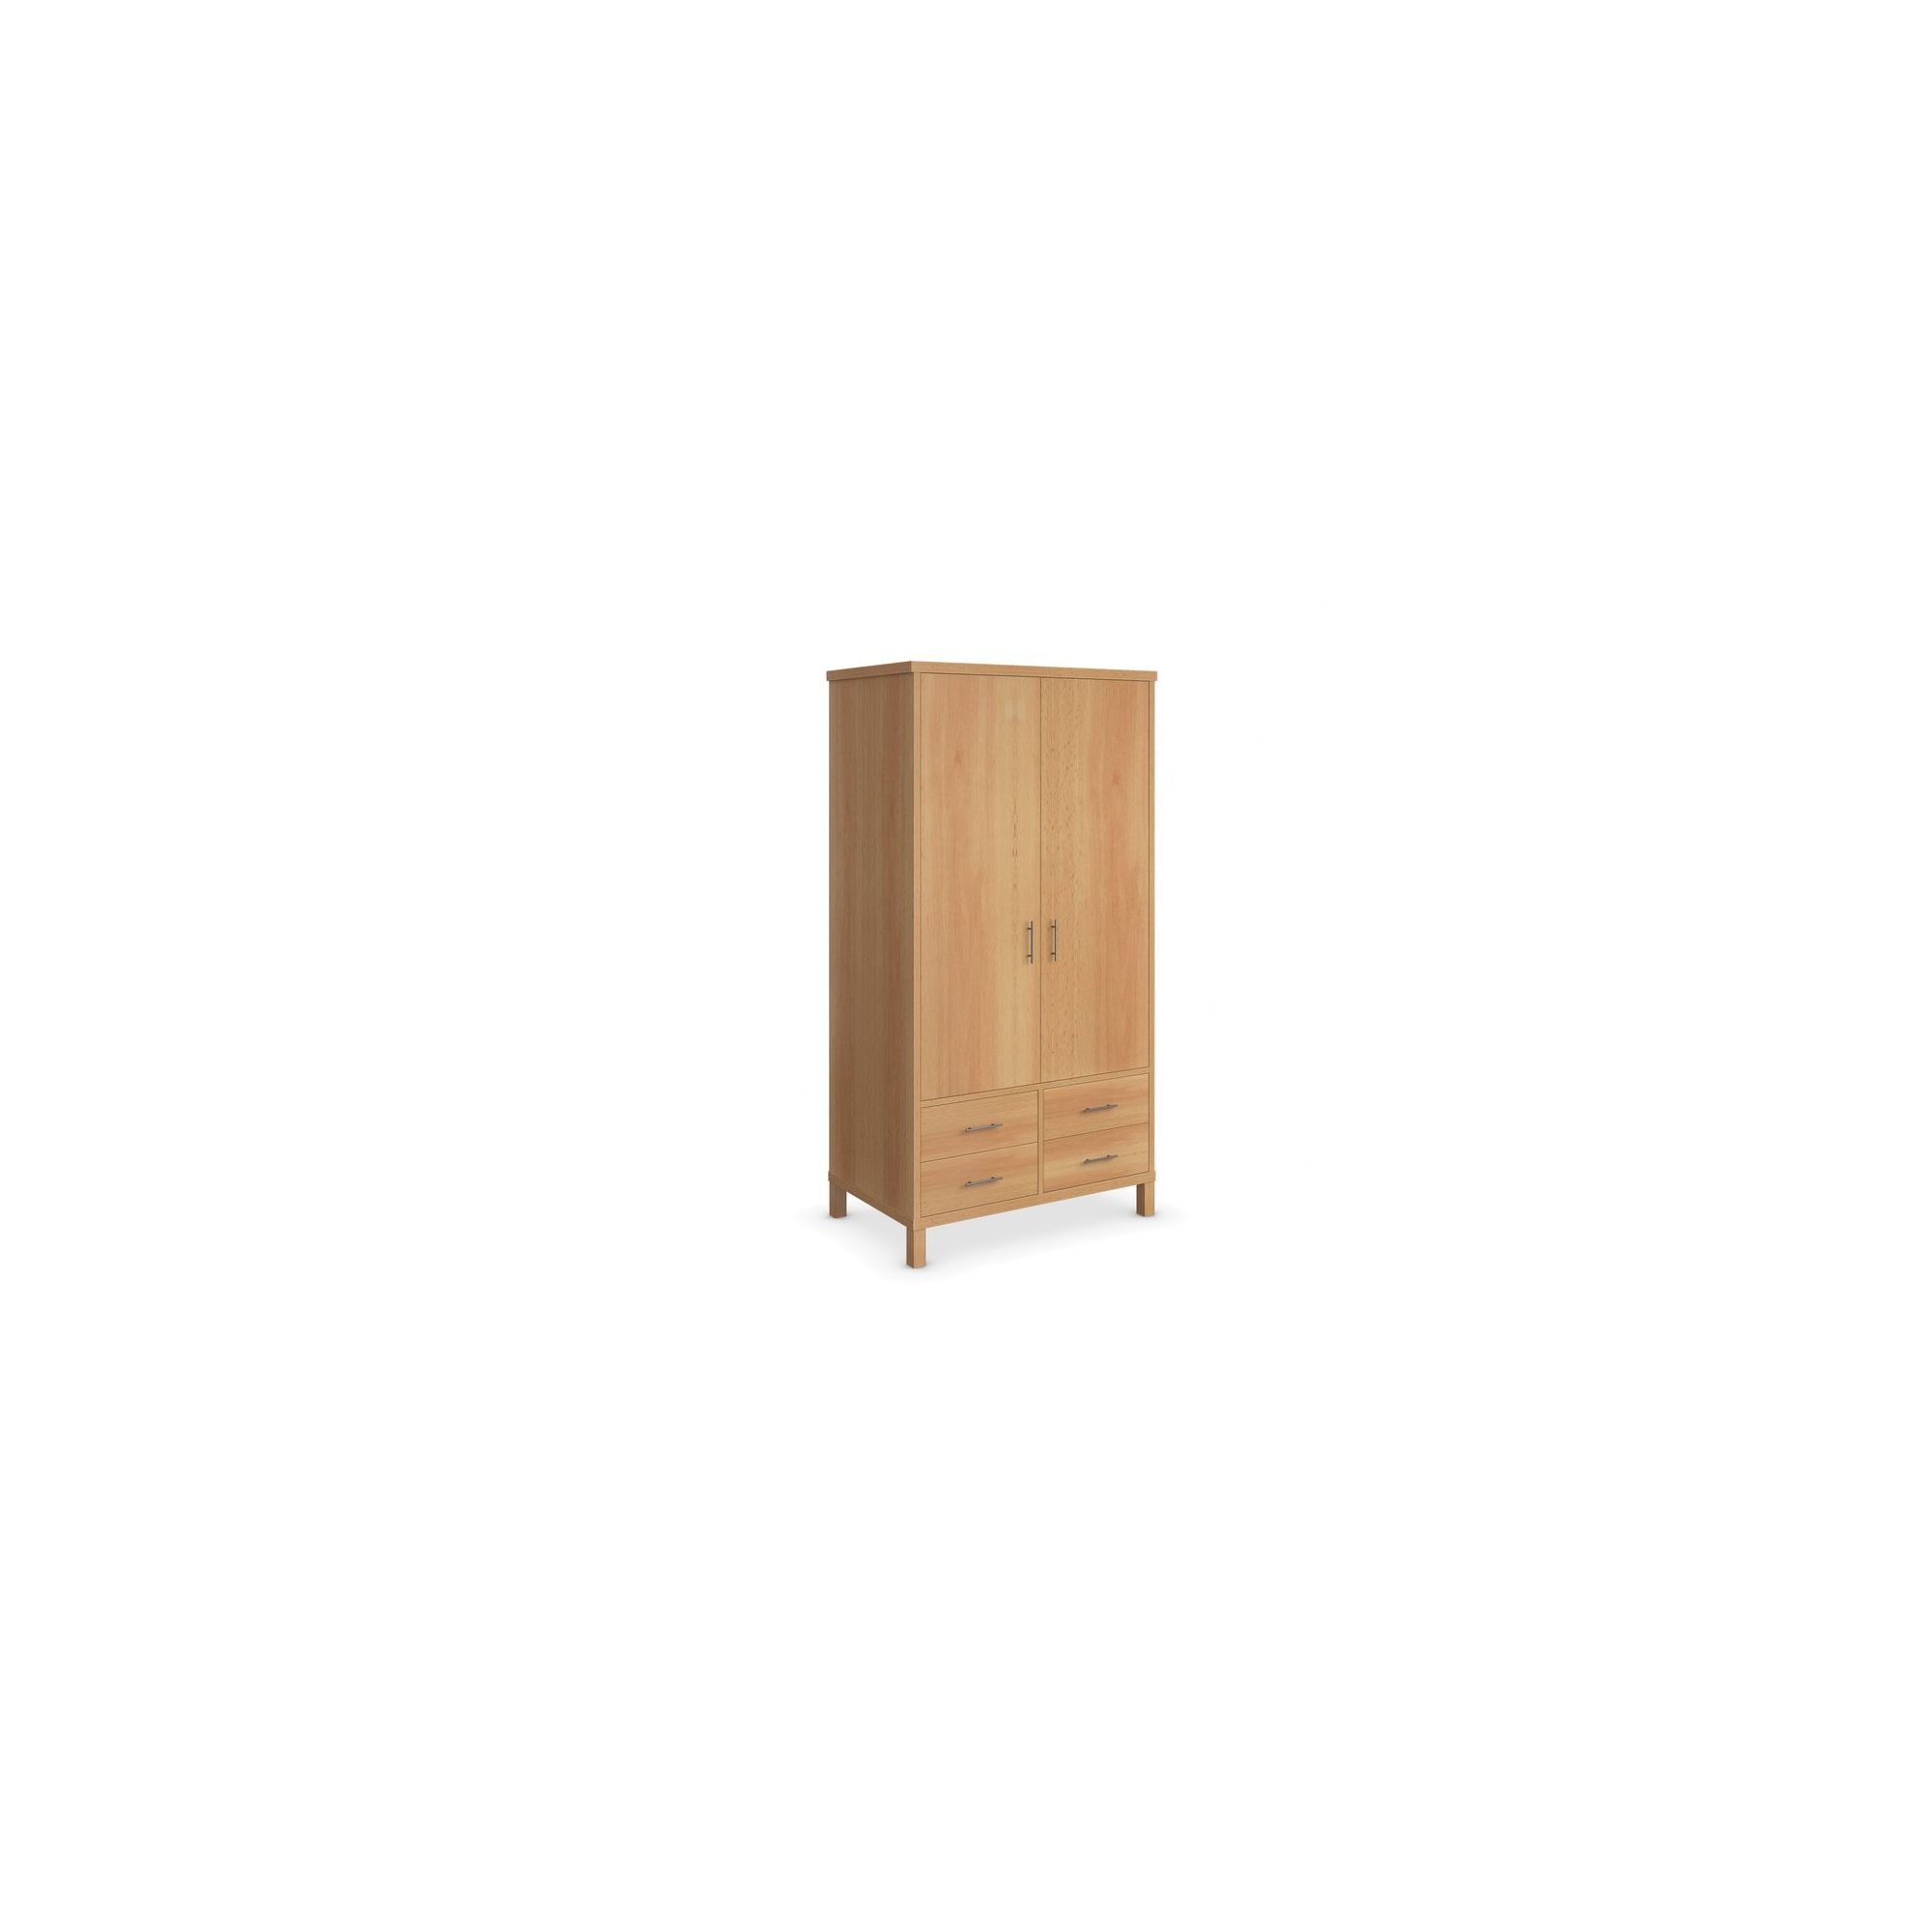 Urbane Designs Vettori Beech Bedroom 2 Door 4 Drawer Wardrobe at Tesco Direct